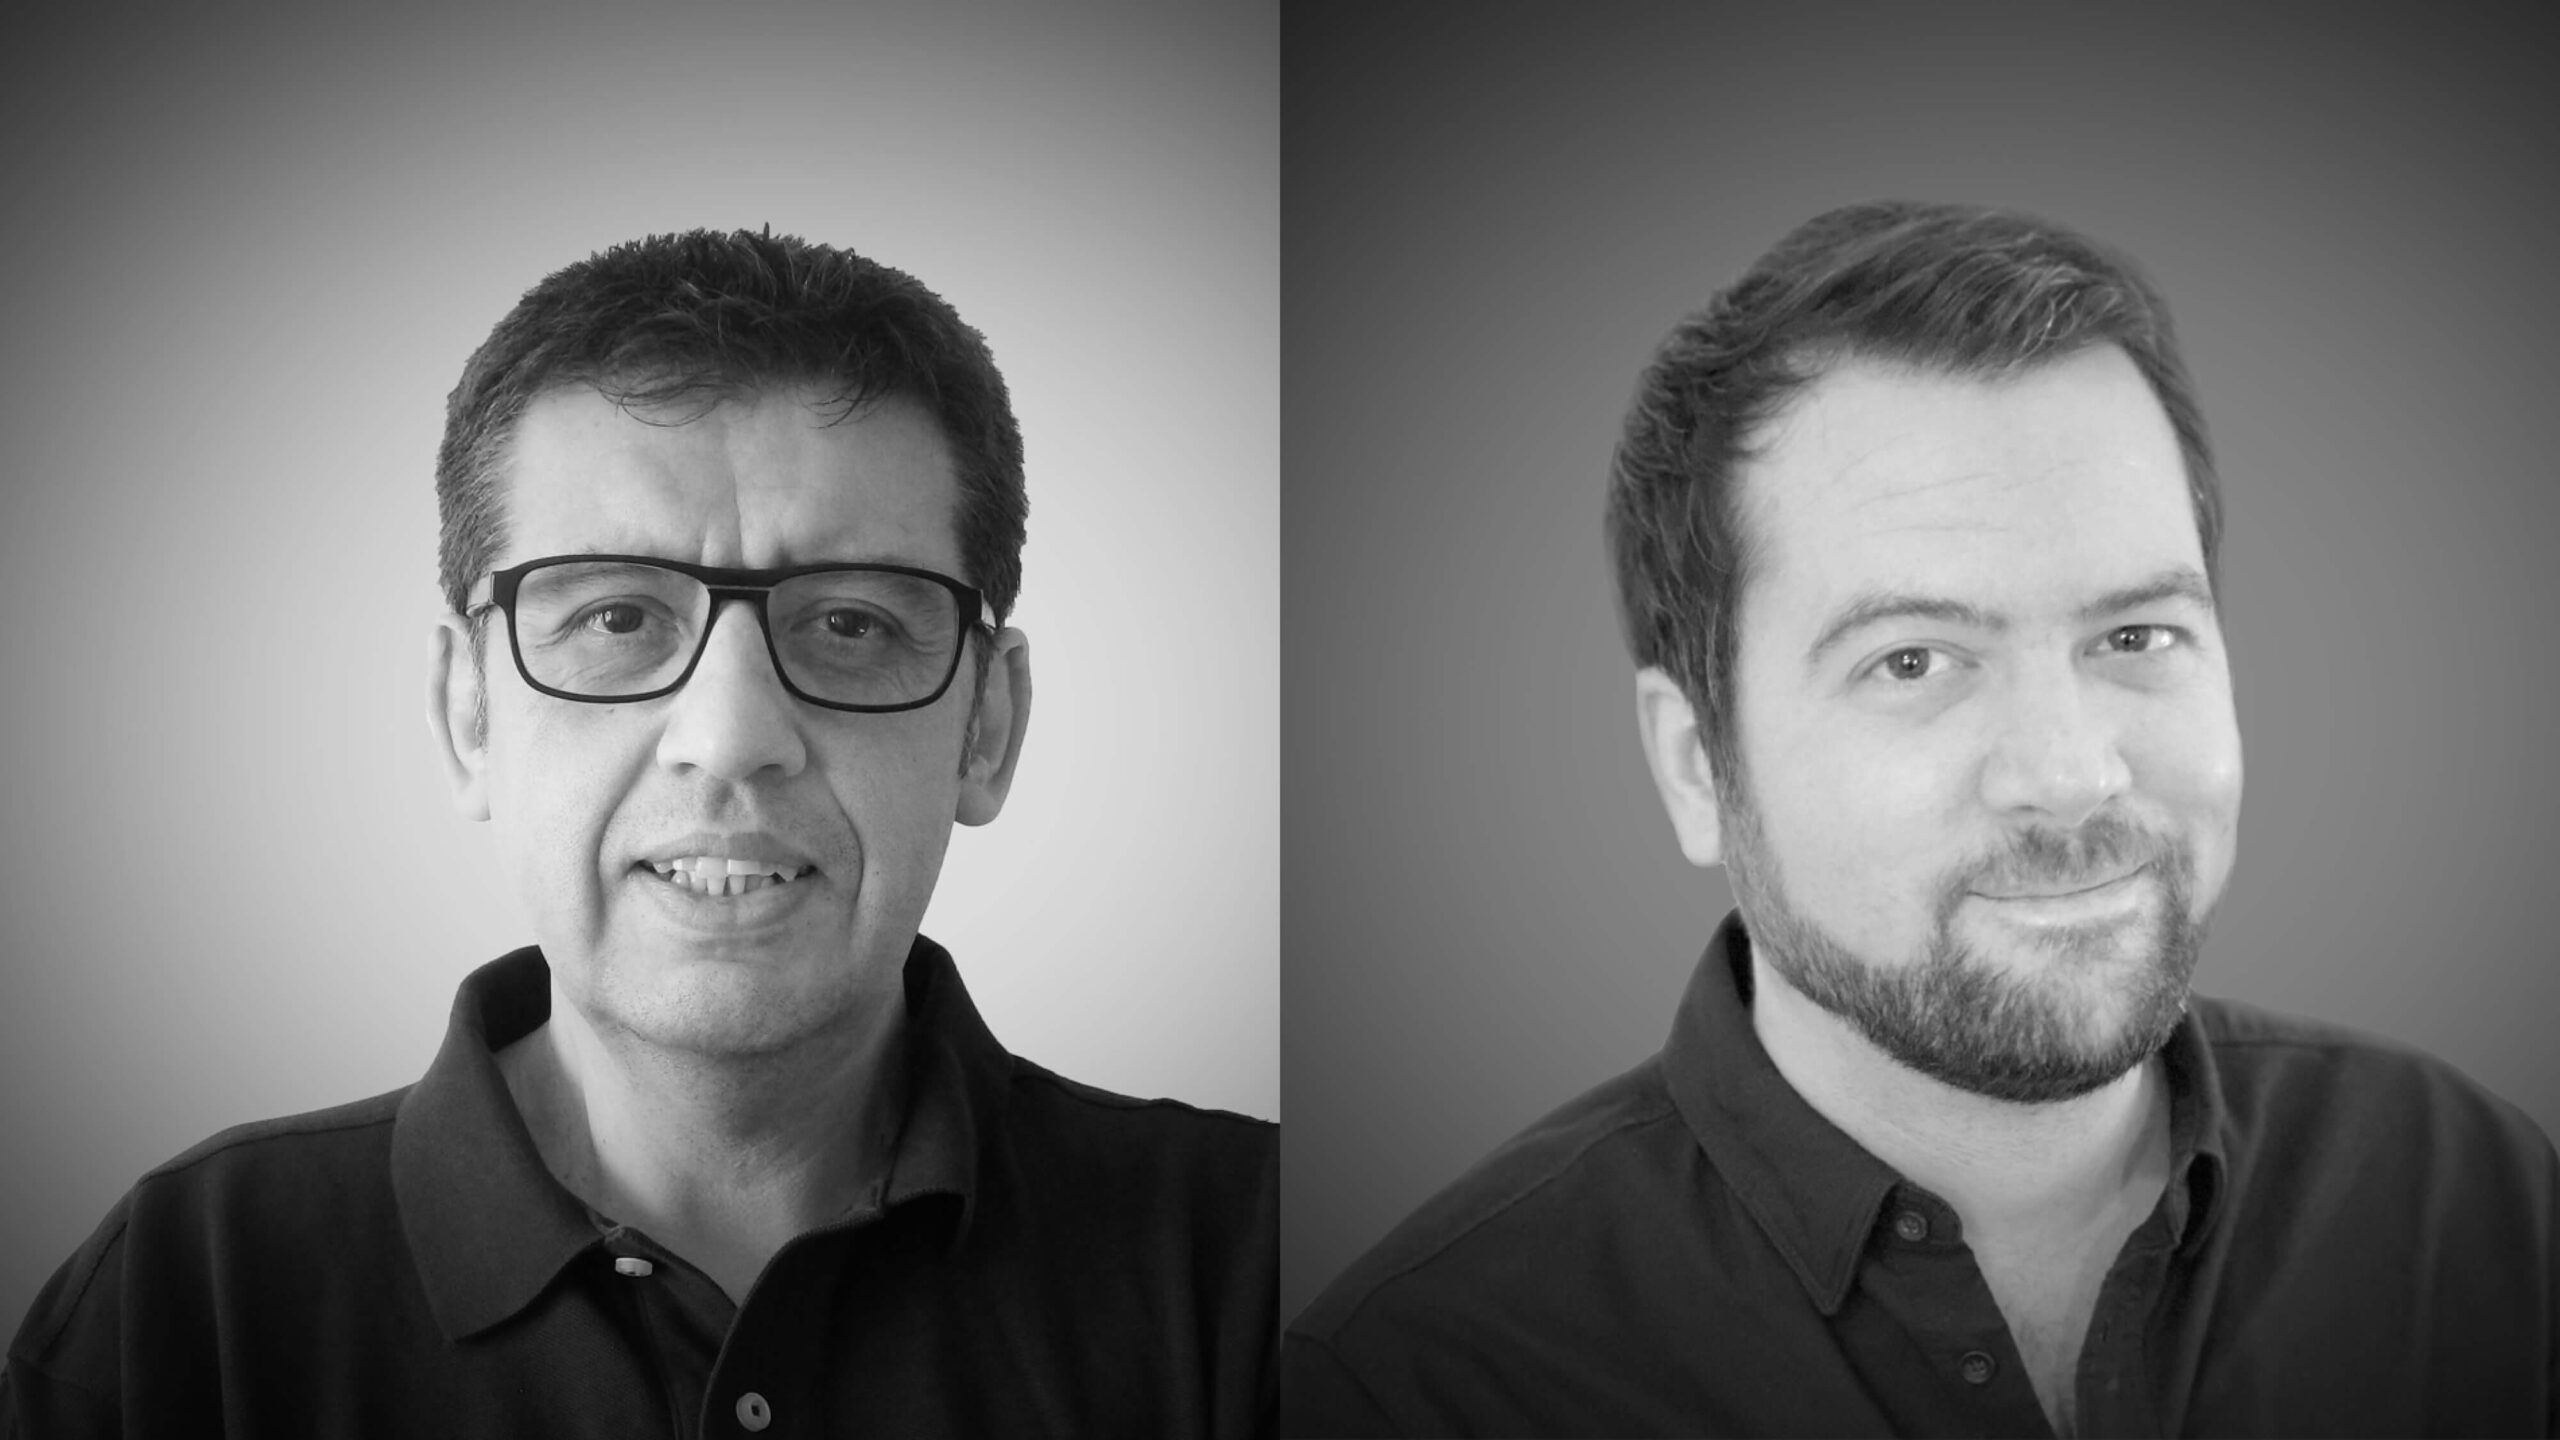 Framestore hires two for real-time team